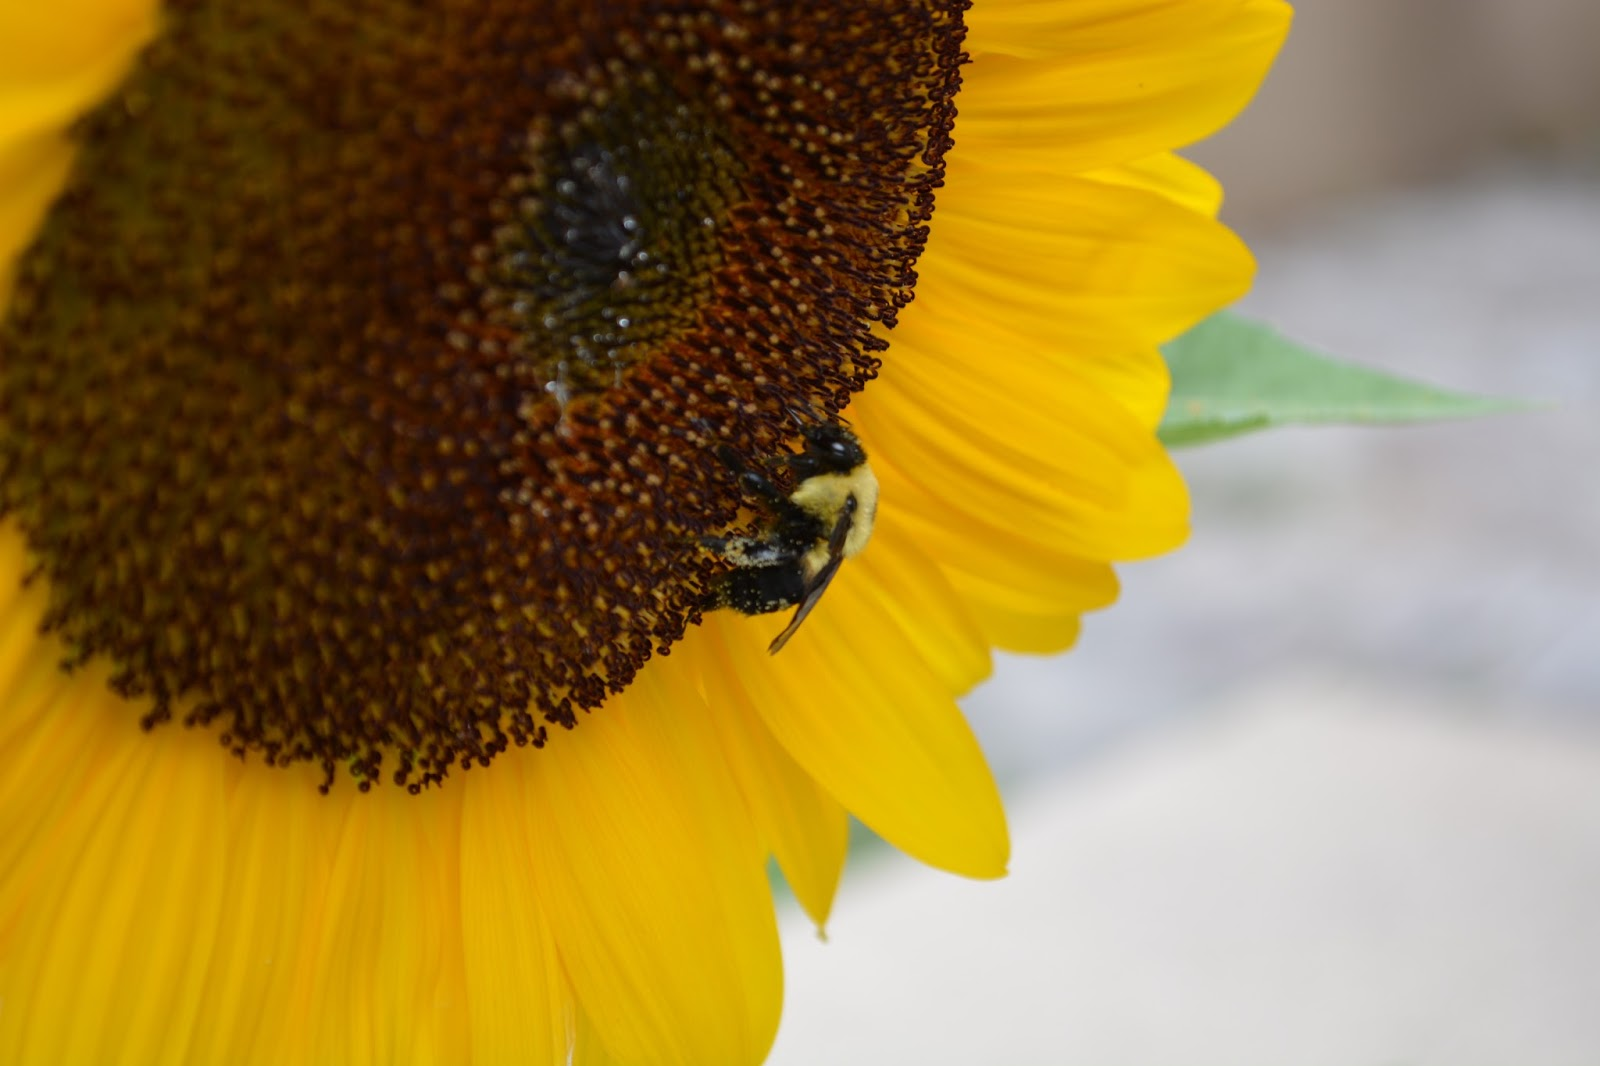 cozy birdhouse | the sunflower and the bee